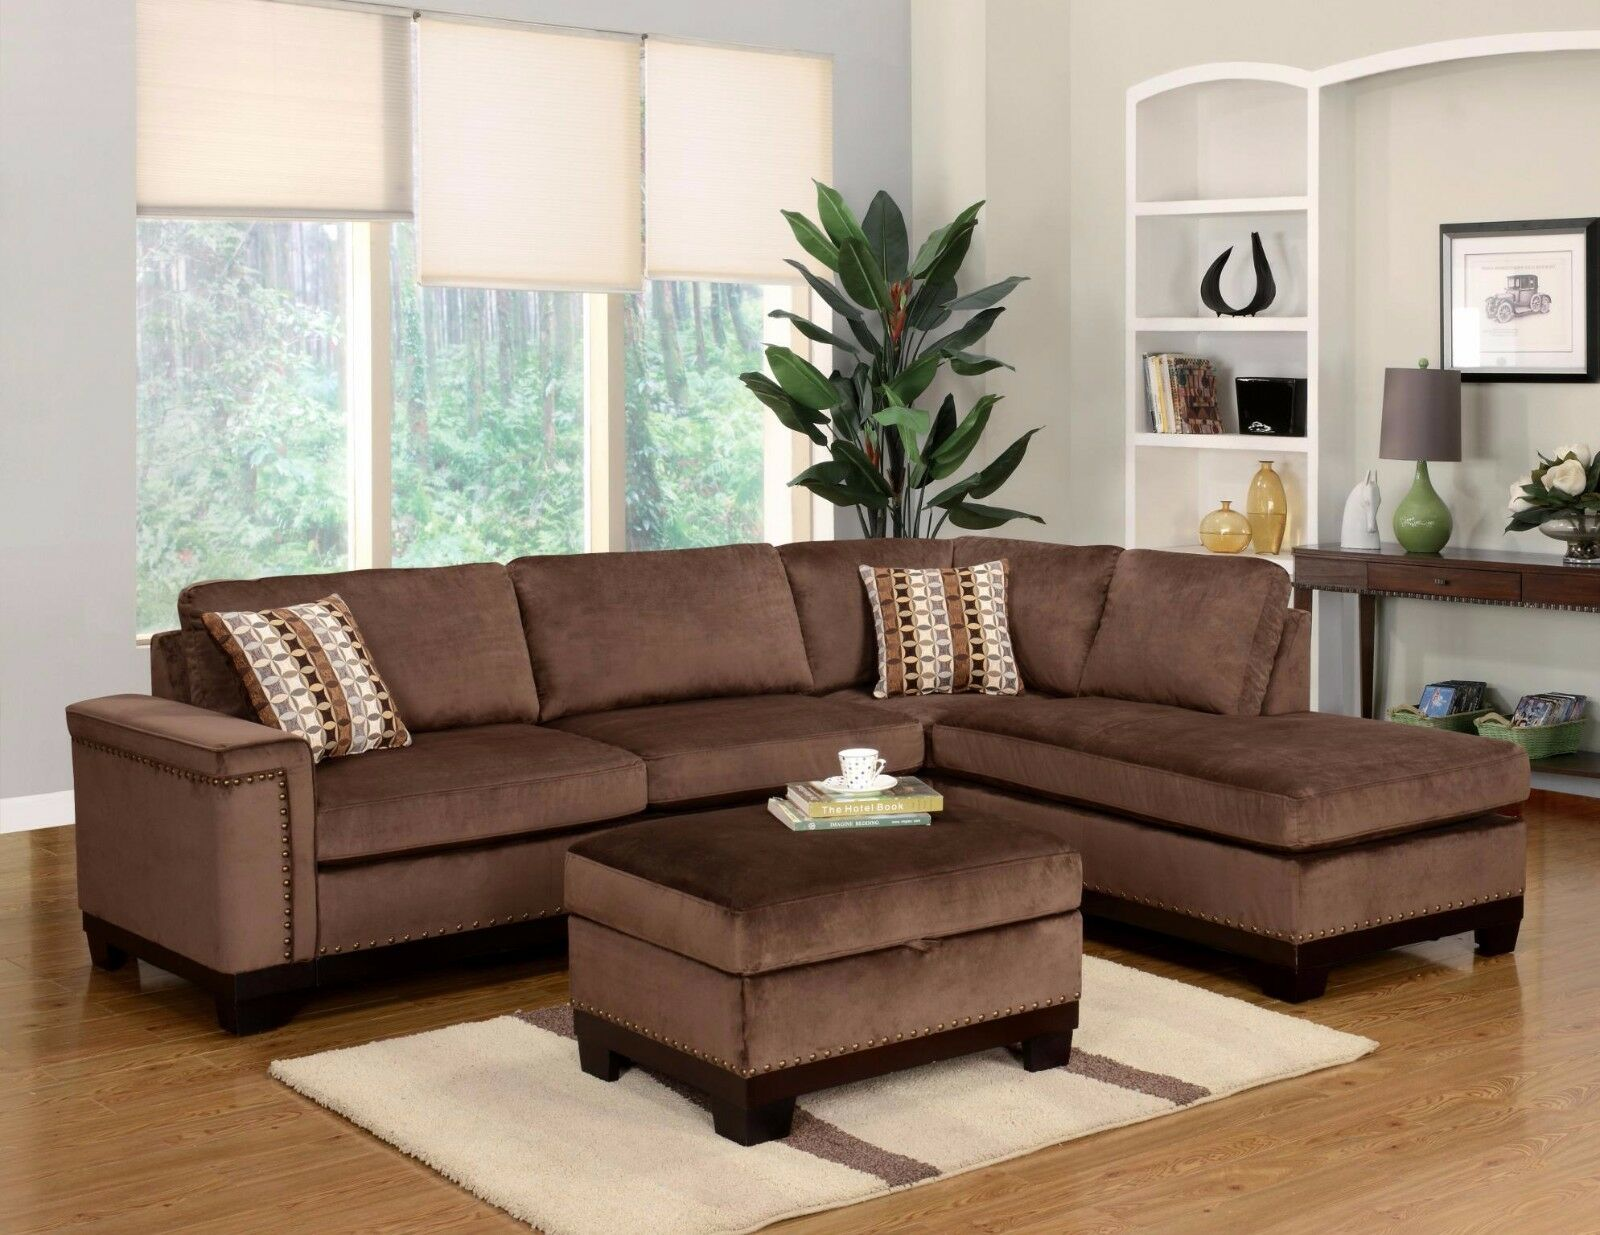 Picture of: Brown Chenille Fabric Reclining Sectional Sofa U3118c Br Sec Global Usa For Sale Online Ebay